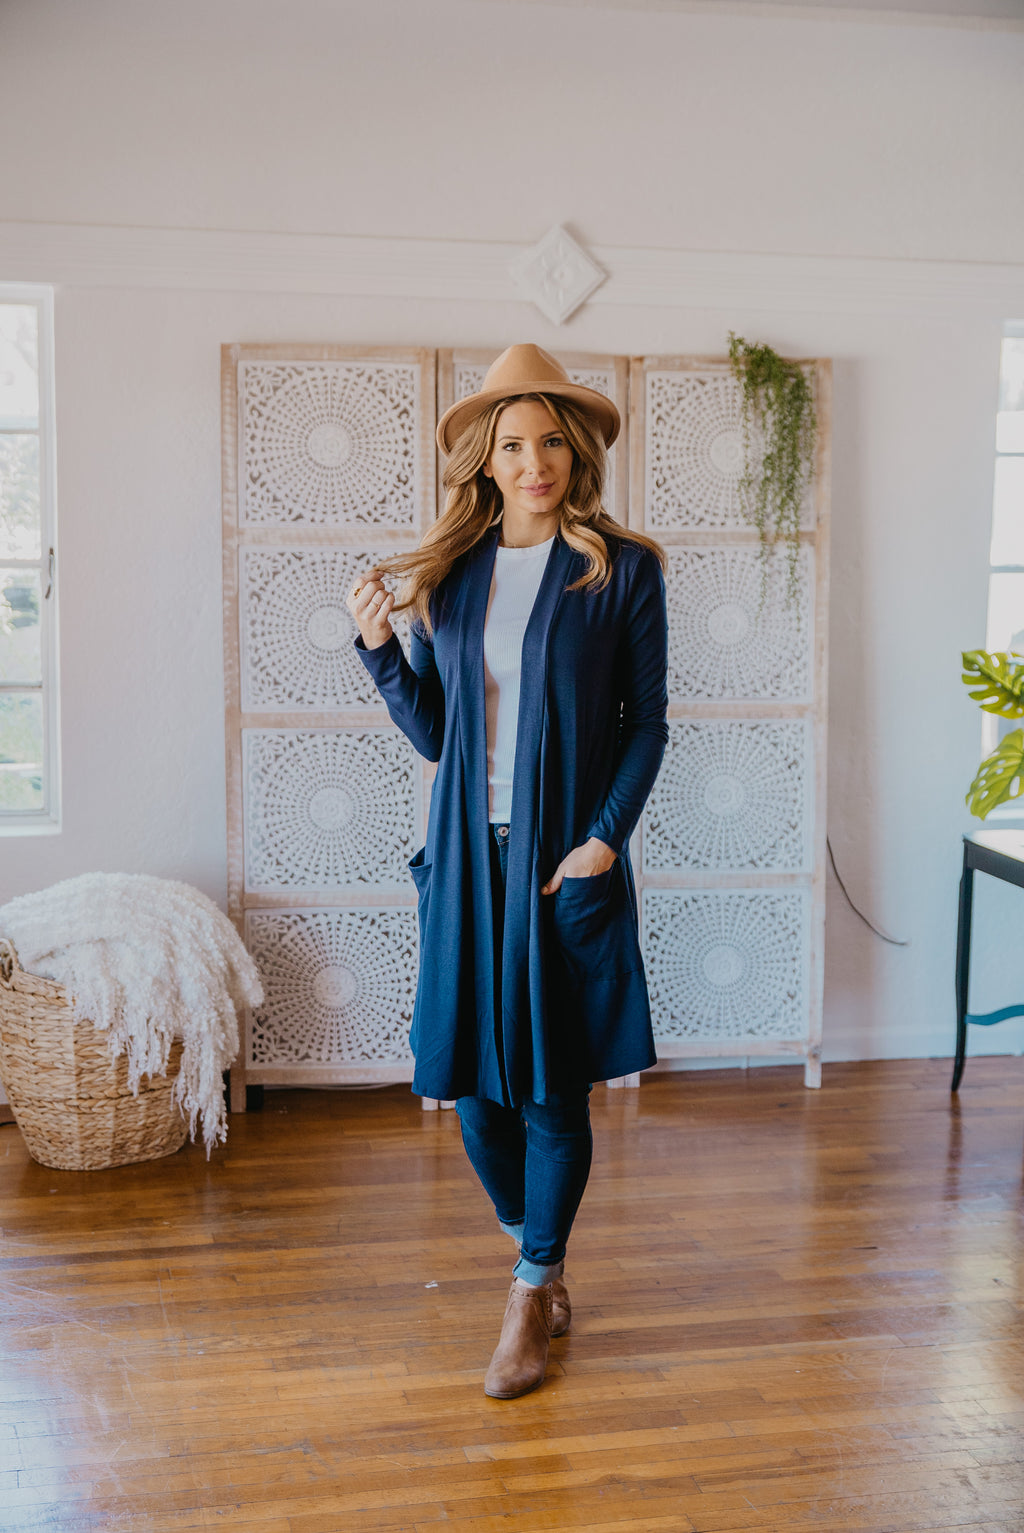 WI Basics: The Kira Cardigan in Navy (Sizes S-3X)